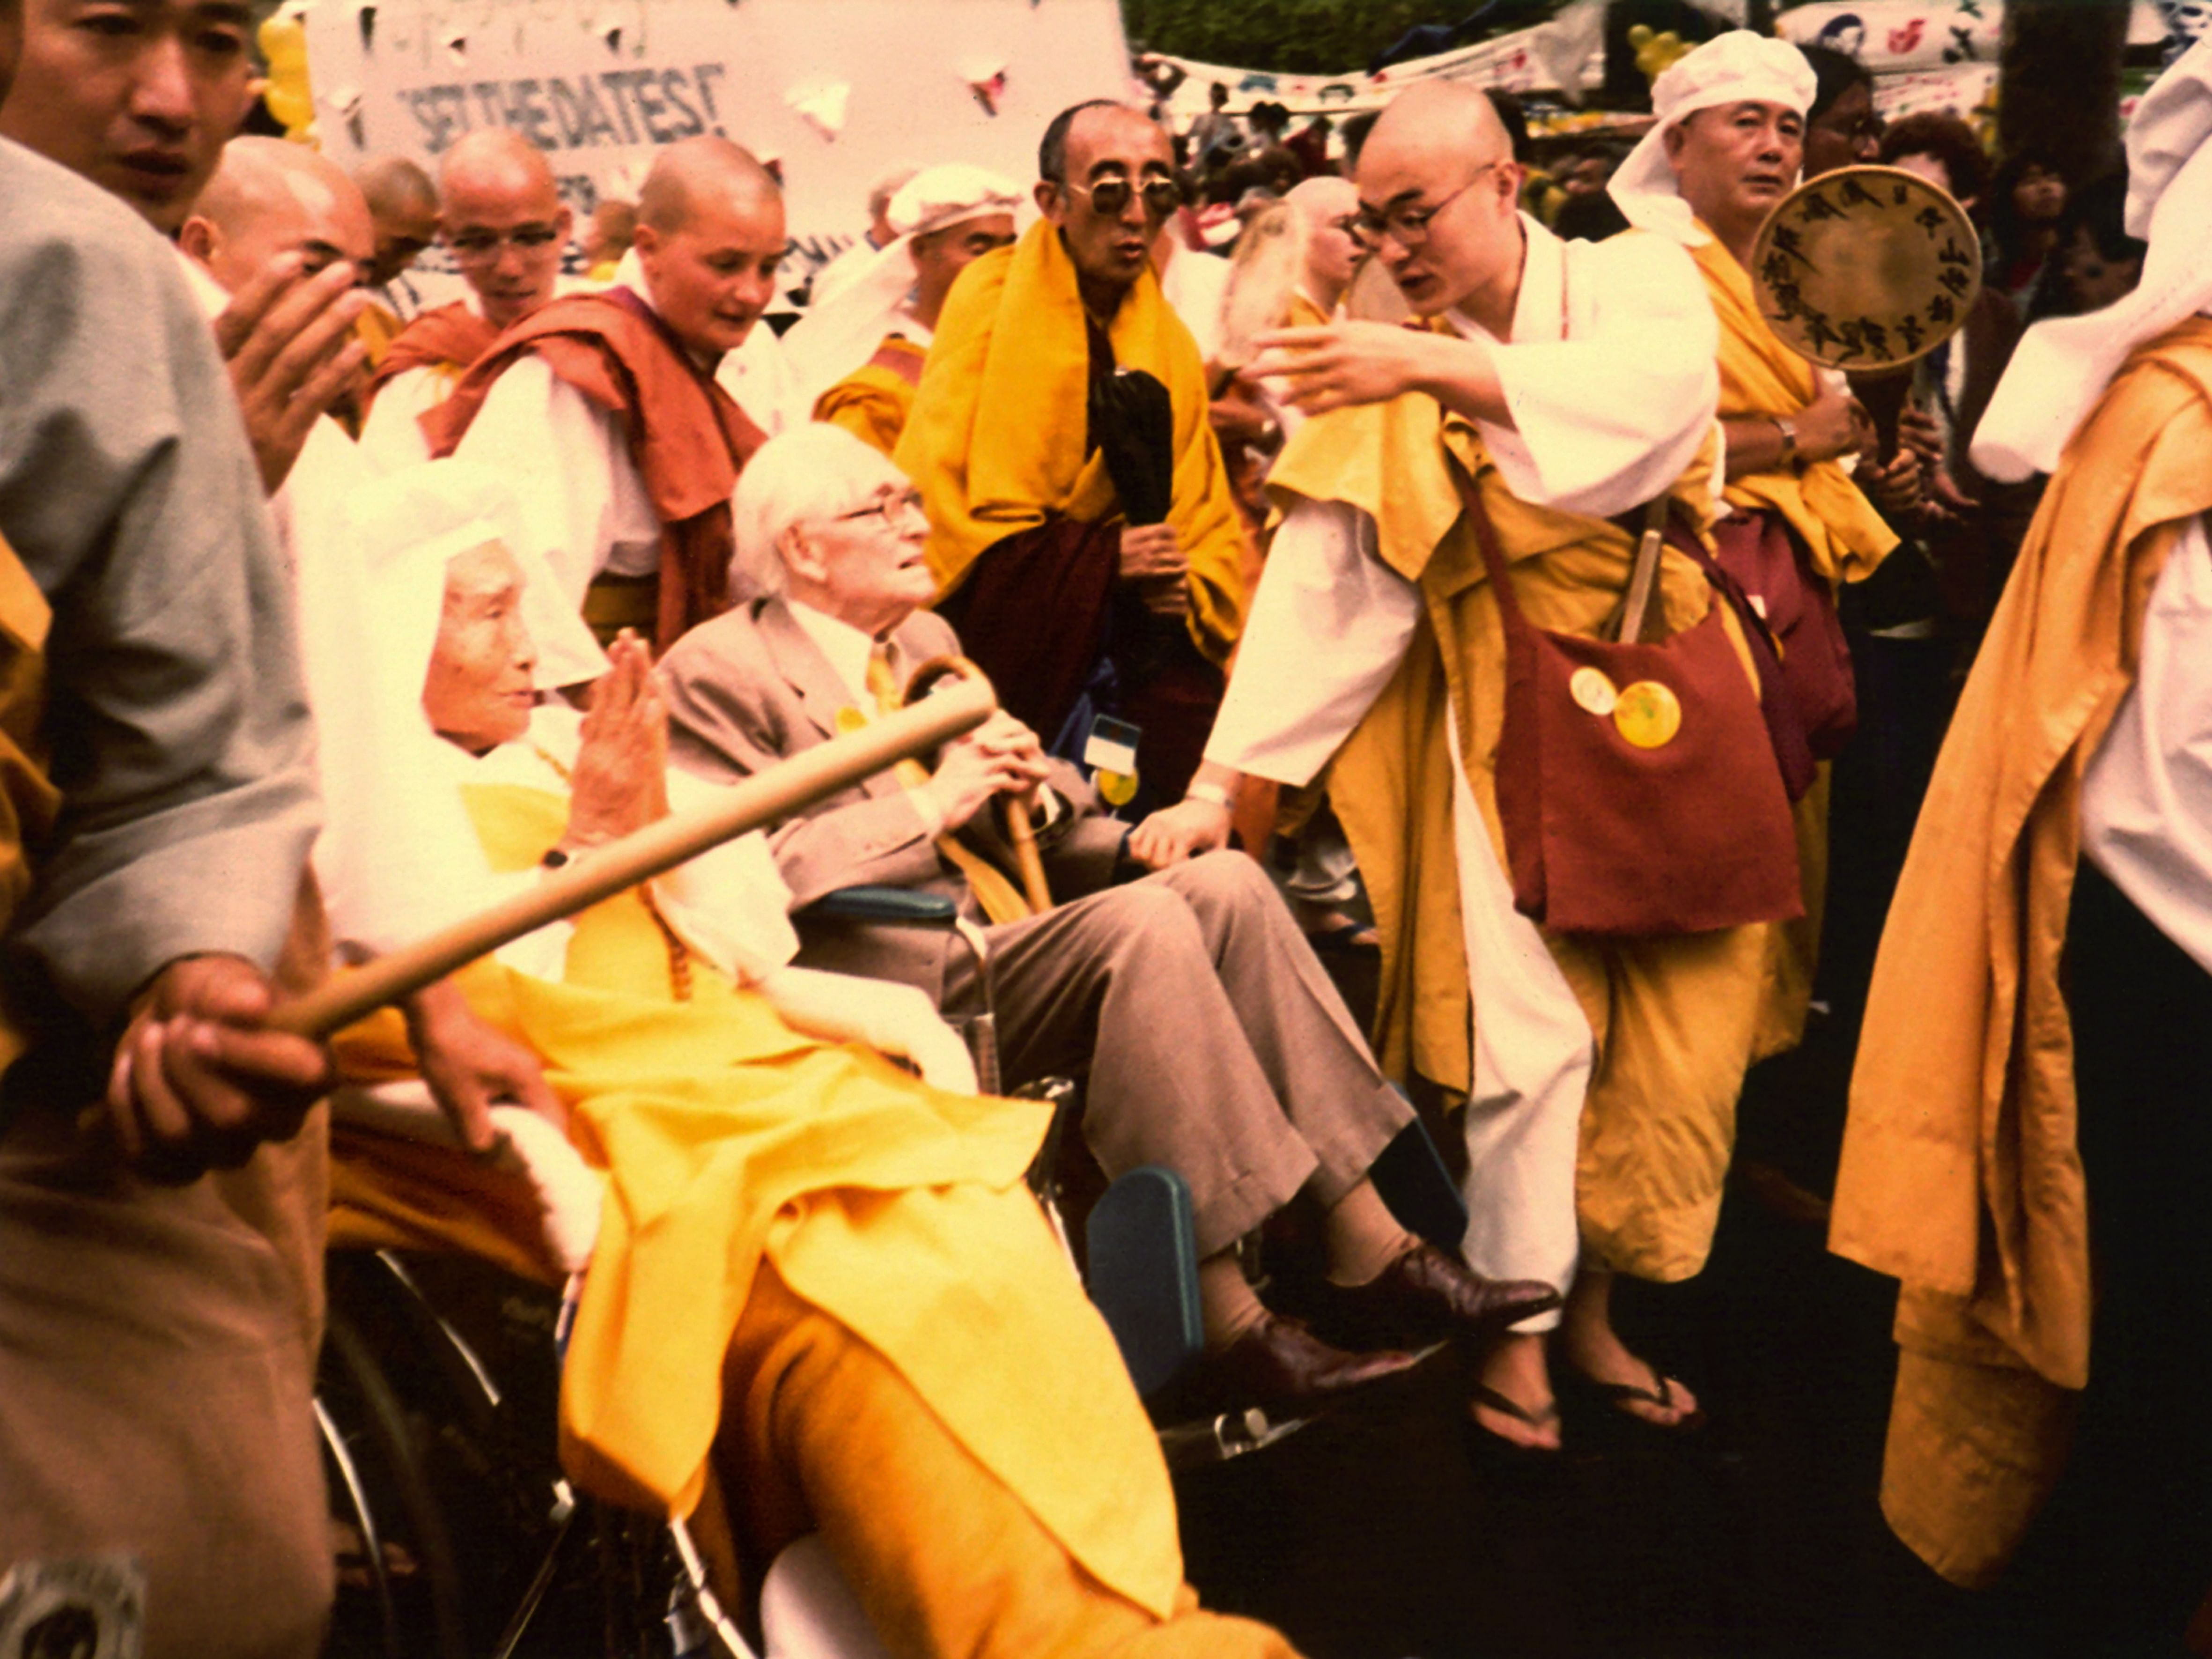 Most Ven Nichidatsu Fujii Guruji (on the wheelchair with folded hands), Lord Philip Noel Barker and Ven Bakula Rinpoche (in dark glasses) at a march on Central Park in New York in 1982 during the United Nations special session on disarmament. (Source: Sonam Wangchuk)